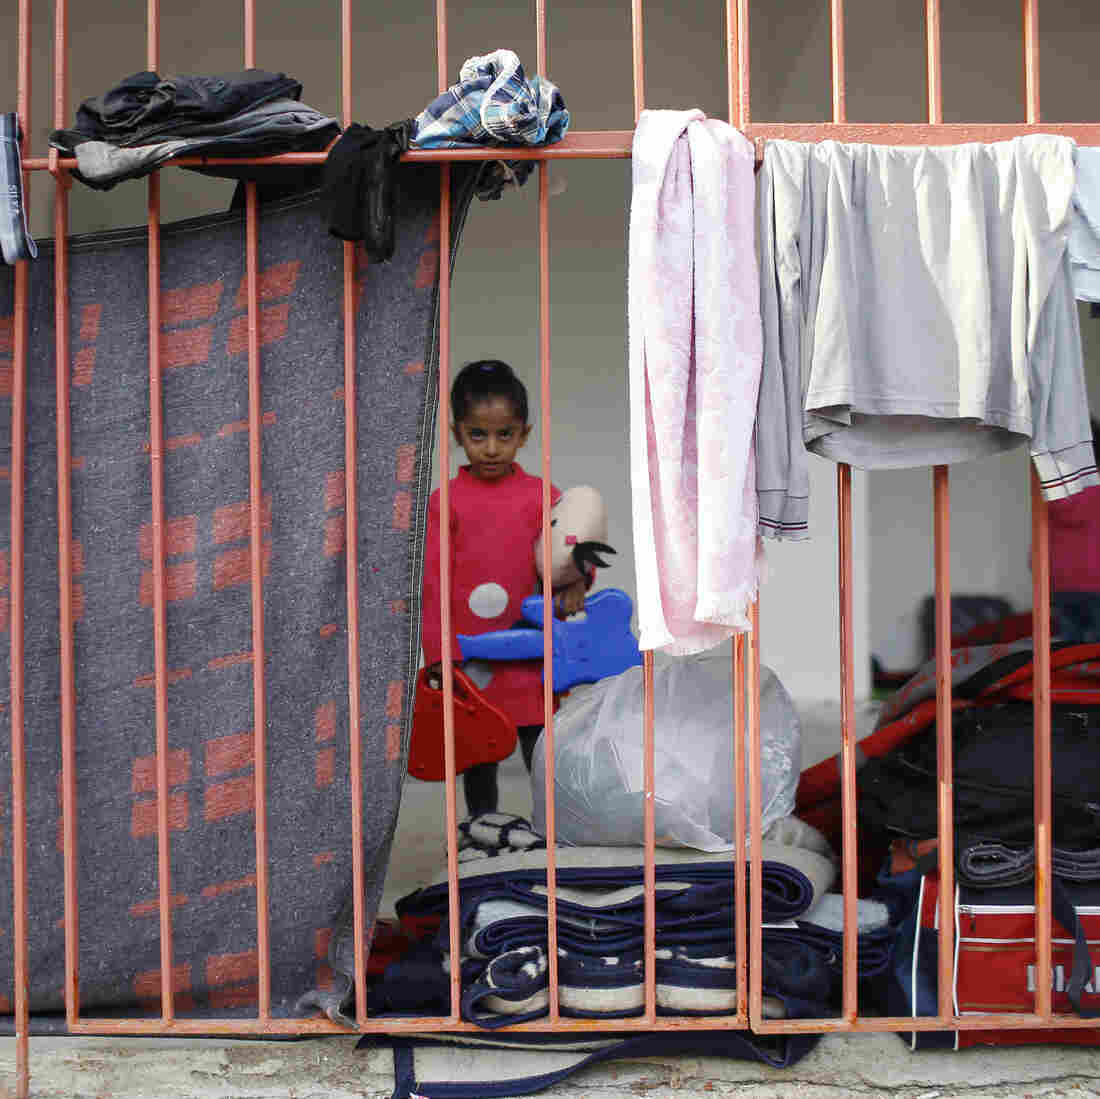 A young girl is among many migrants, most of them Syrian, resting at a sports stadium near Turkey's western border with Greece on Sept. 22. Turkey has taken in some 2 million Syrians fleeing war in their homeland. But Turkey rarely allows the migrants to work or receive citizenship, and many of the Syrians say they want to move on to Europe.